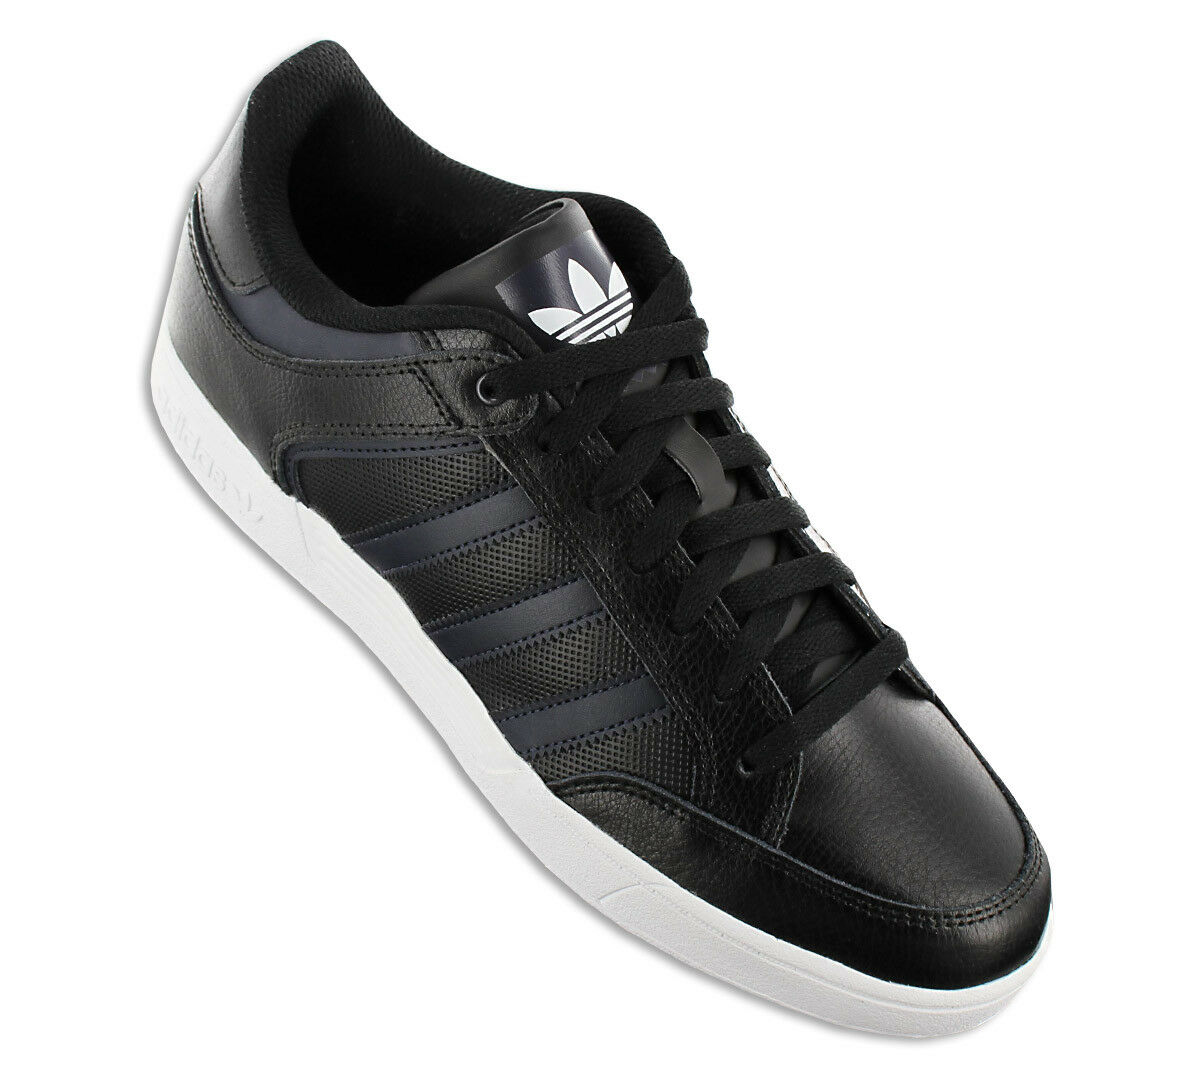 NEW adidas Varial Low BY4057 Men''s shoes Trainers Sneakers SALE